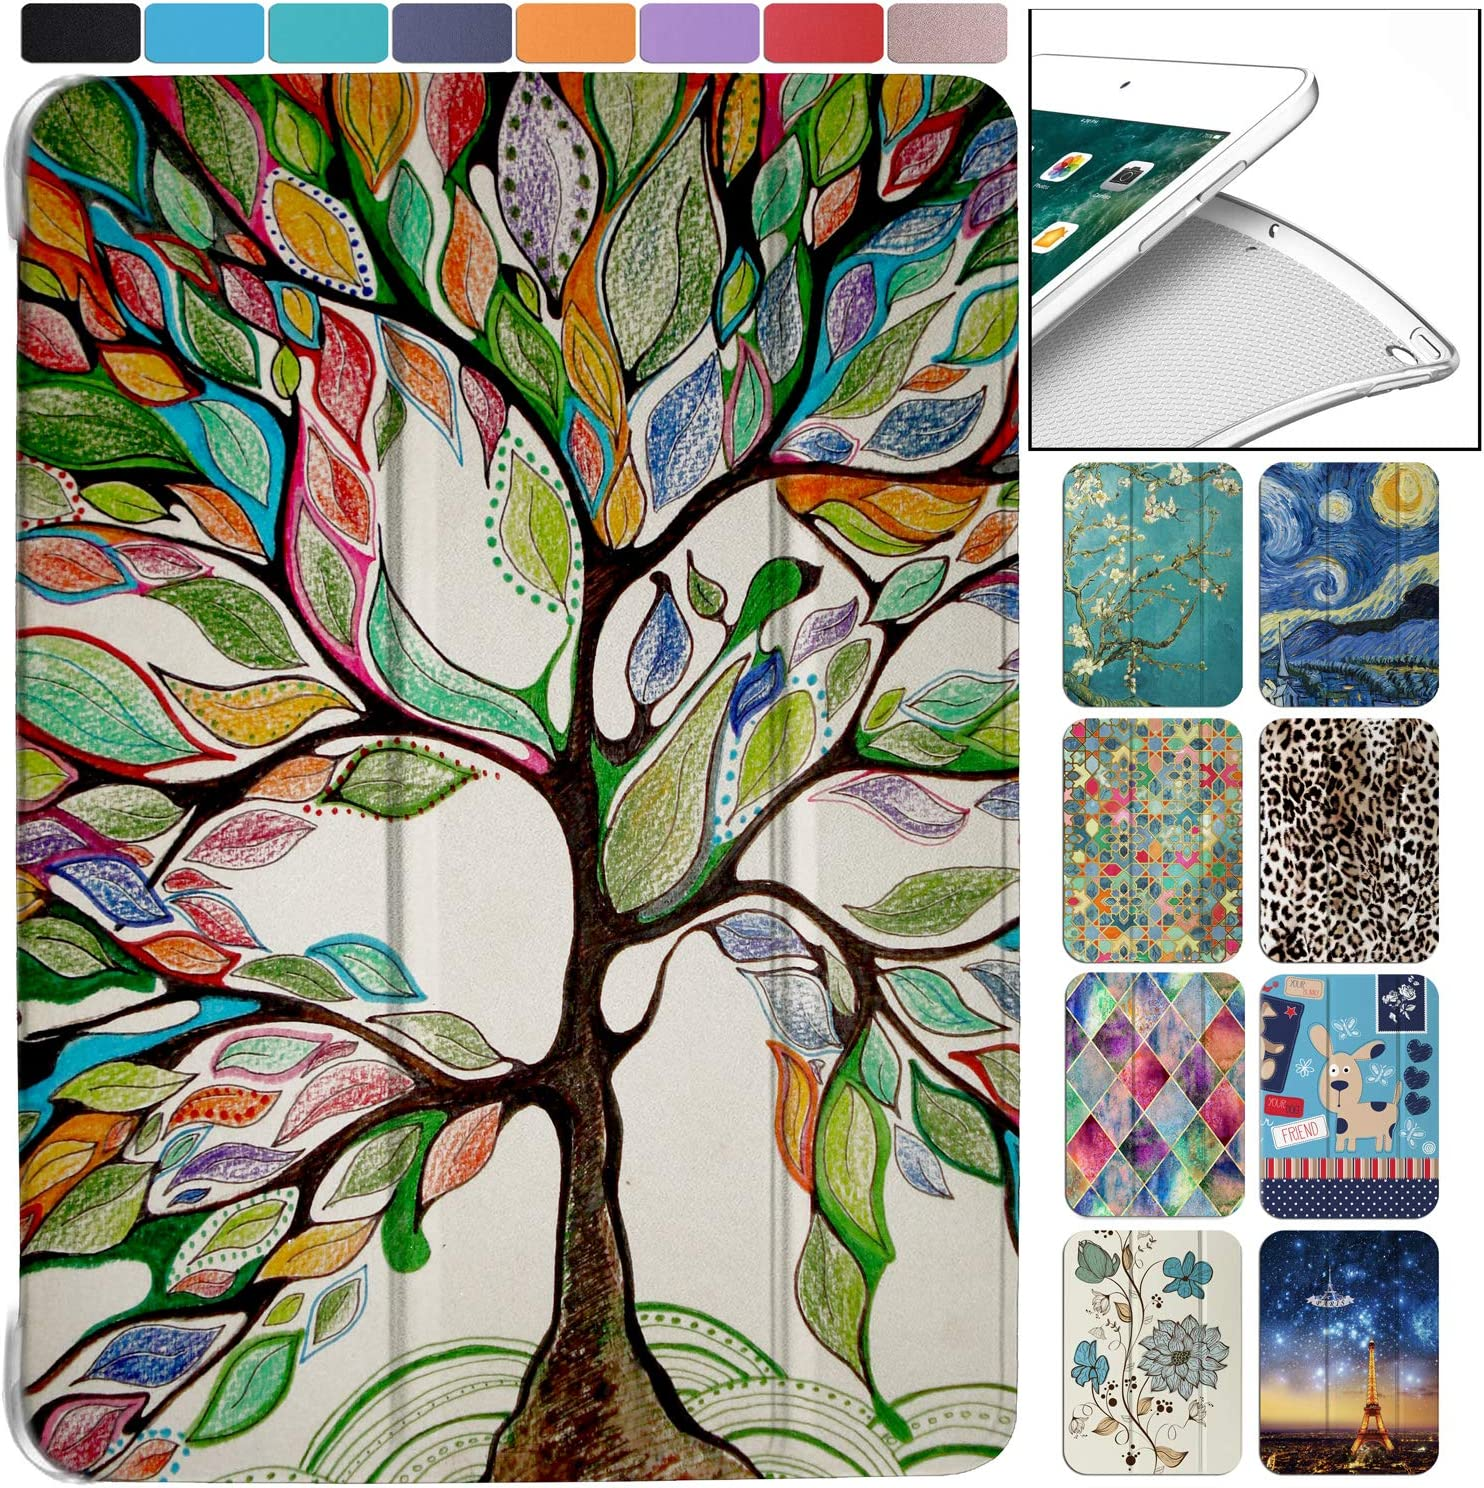 "DuraSafe Cases for iPad PRO 2016-9.7"" MLMP2LL/A MM172LL/A MLMN2LL/A MLMW2LL/A MLMX2LL/A MM192LL/A Ultra Slim Energy Saving Printed Case with Adjustable Stand Feature and Sleek Design - Olivia Tree"